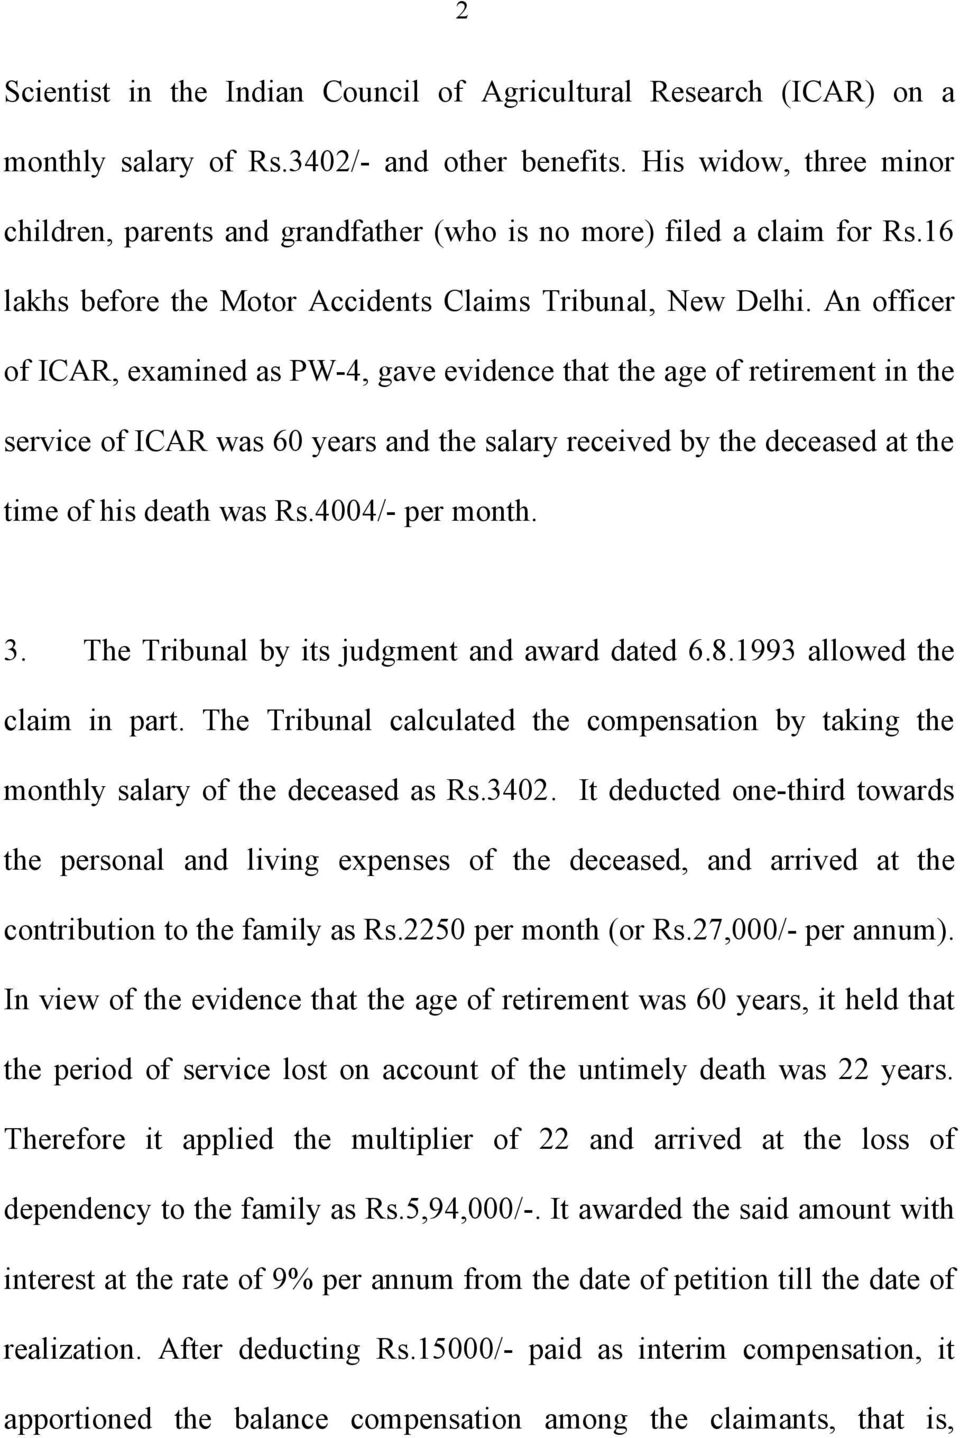 An officer of ICAR, examined as PW-4, gave evidence that the age of retirement in the service of ICAR was 60 years and the salary received by the deceased at the time of his death was Rs.